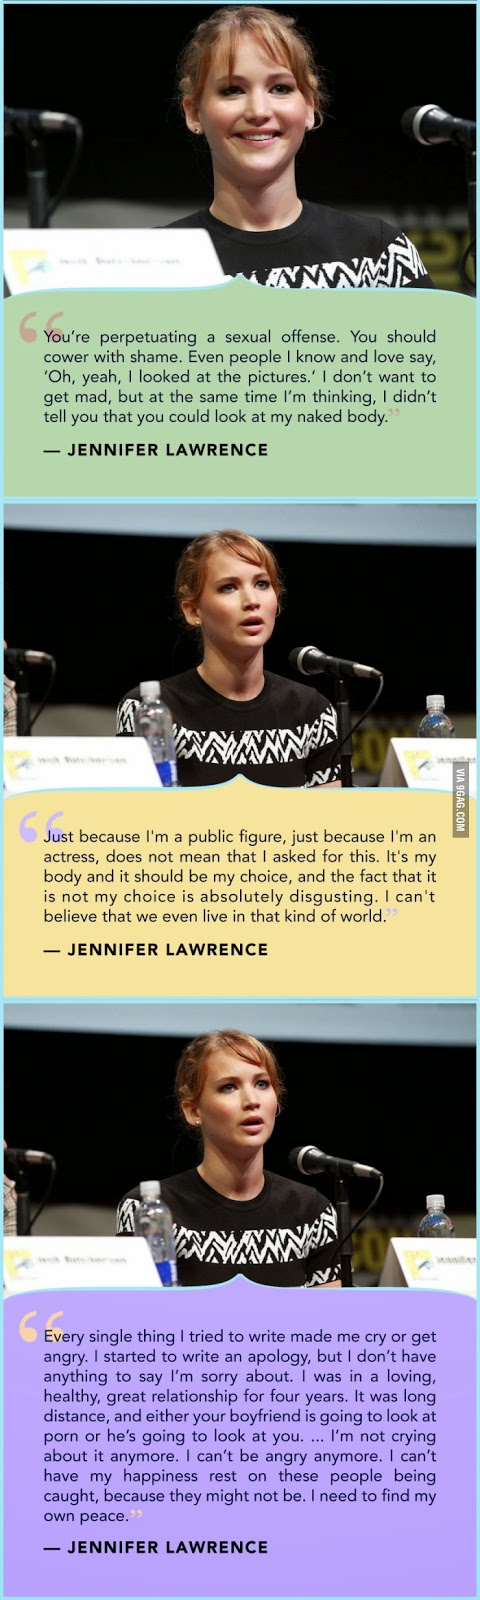 Jennifer Lawrence reacts to The Fappening